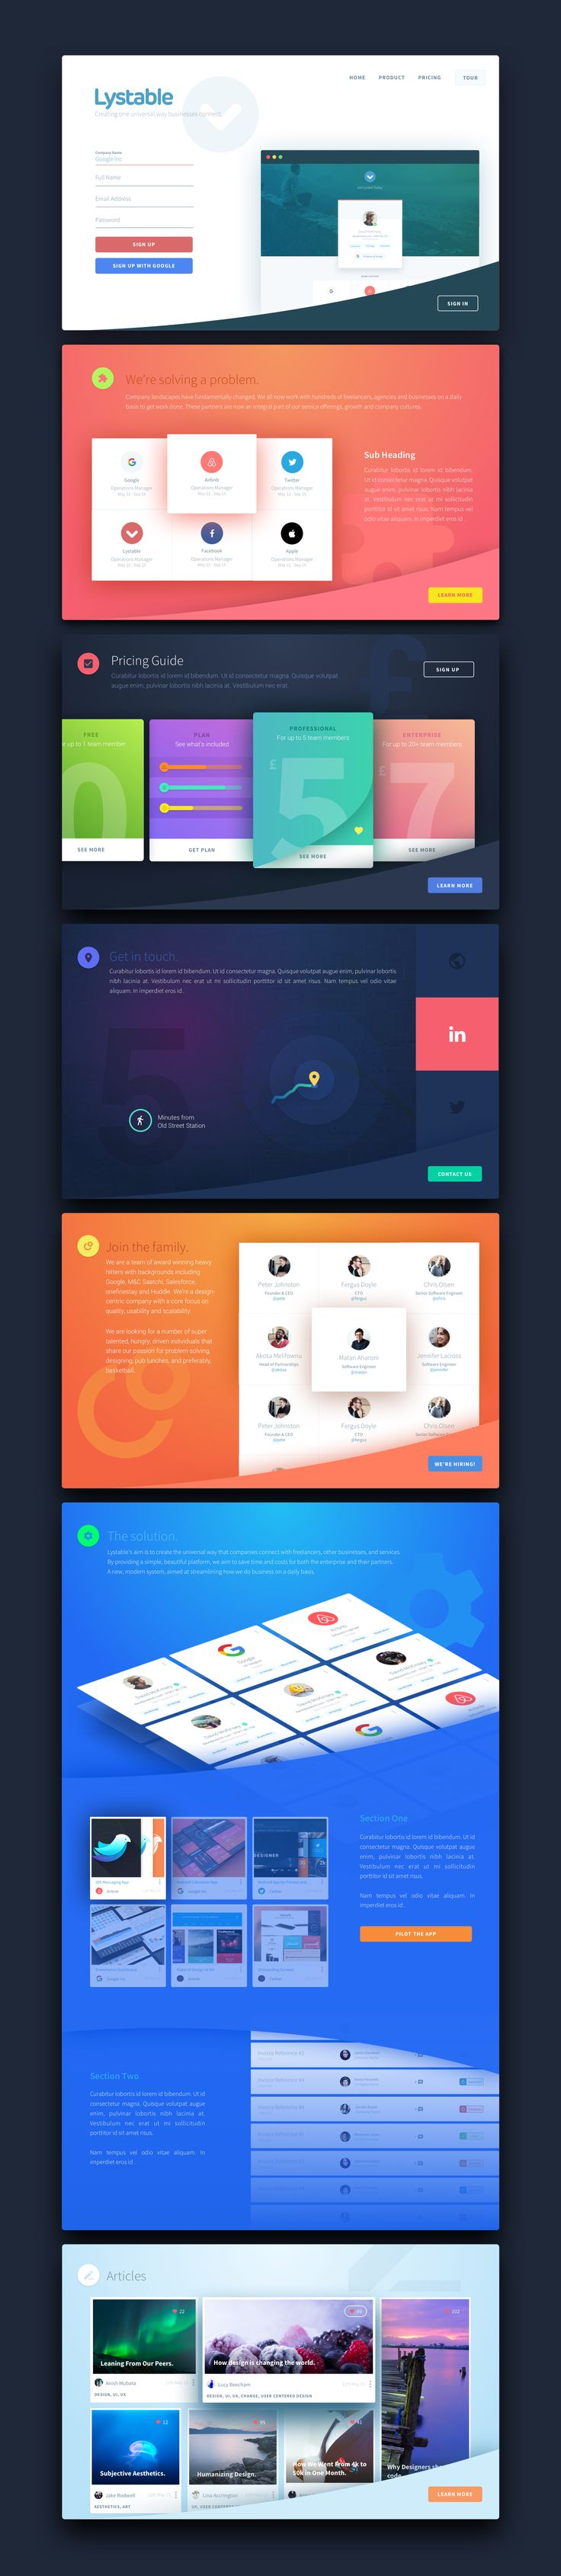 Lystable Case Study, UX and web design by Balraj at CircularChaos.